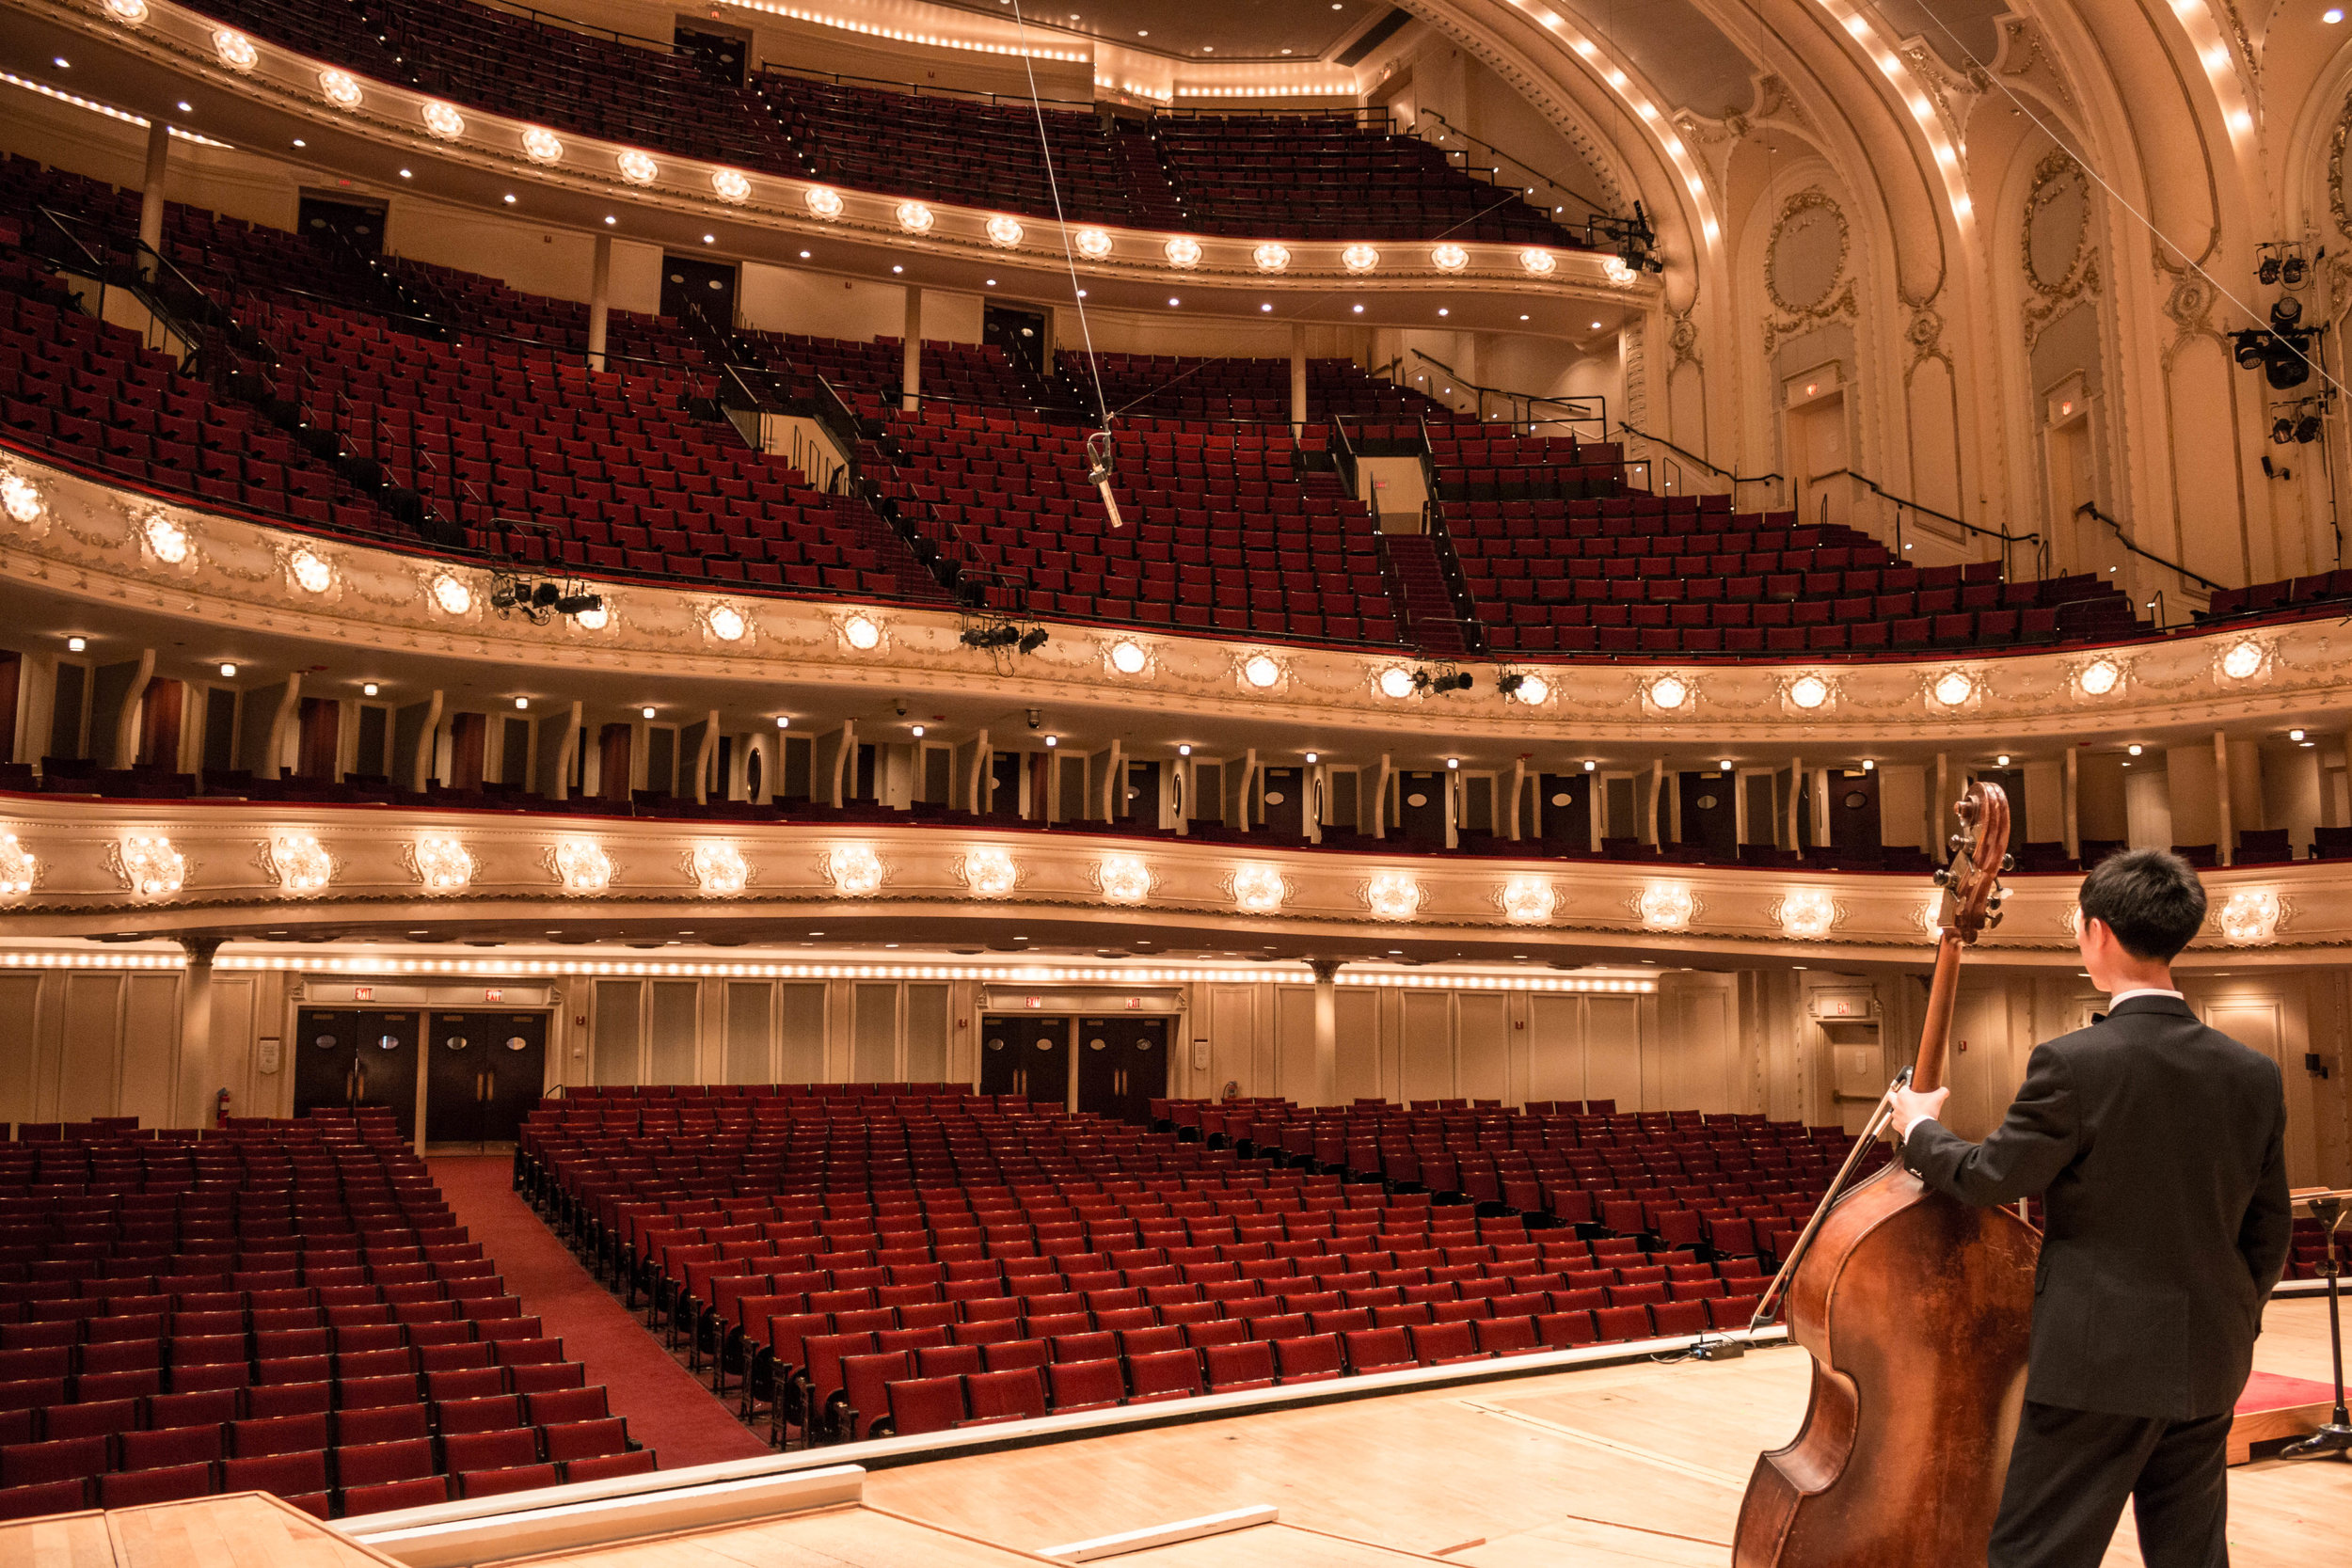 Shawn at Chicago Symphony Hall